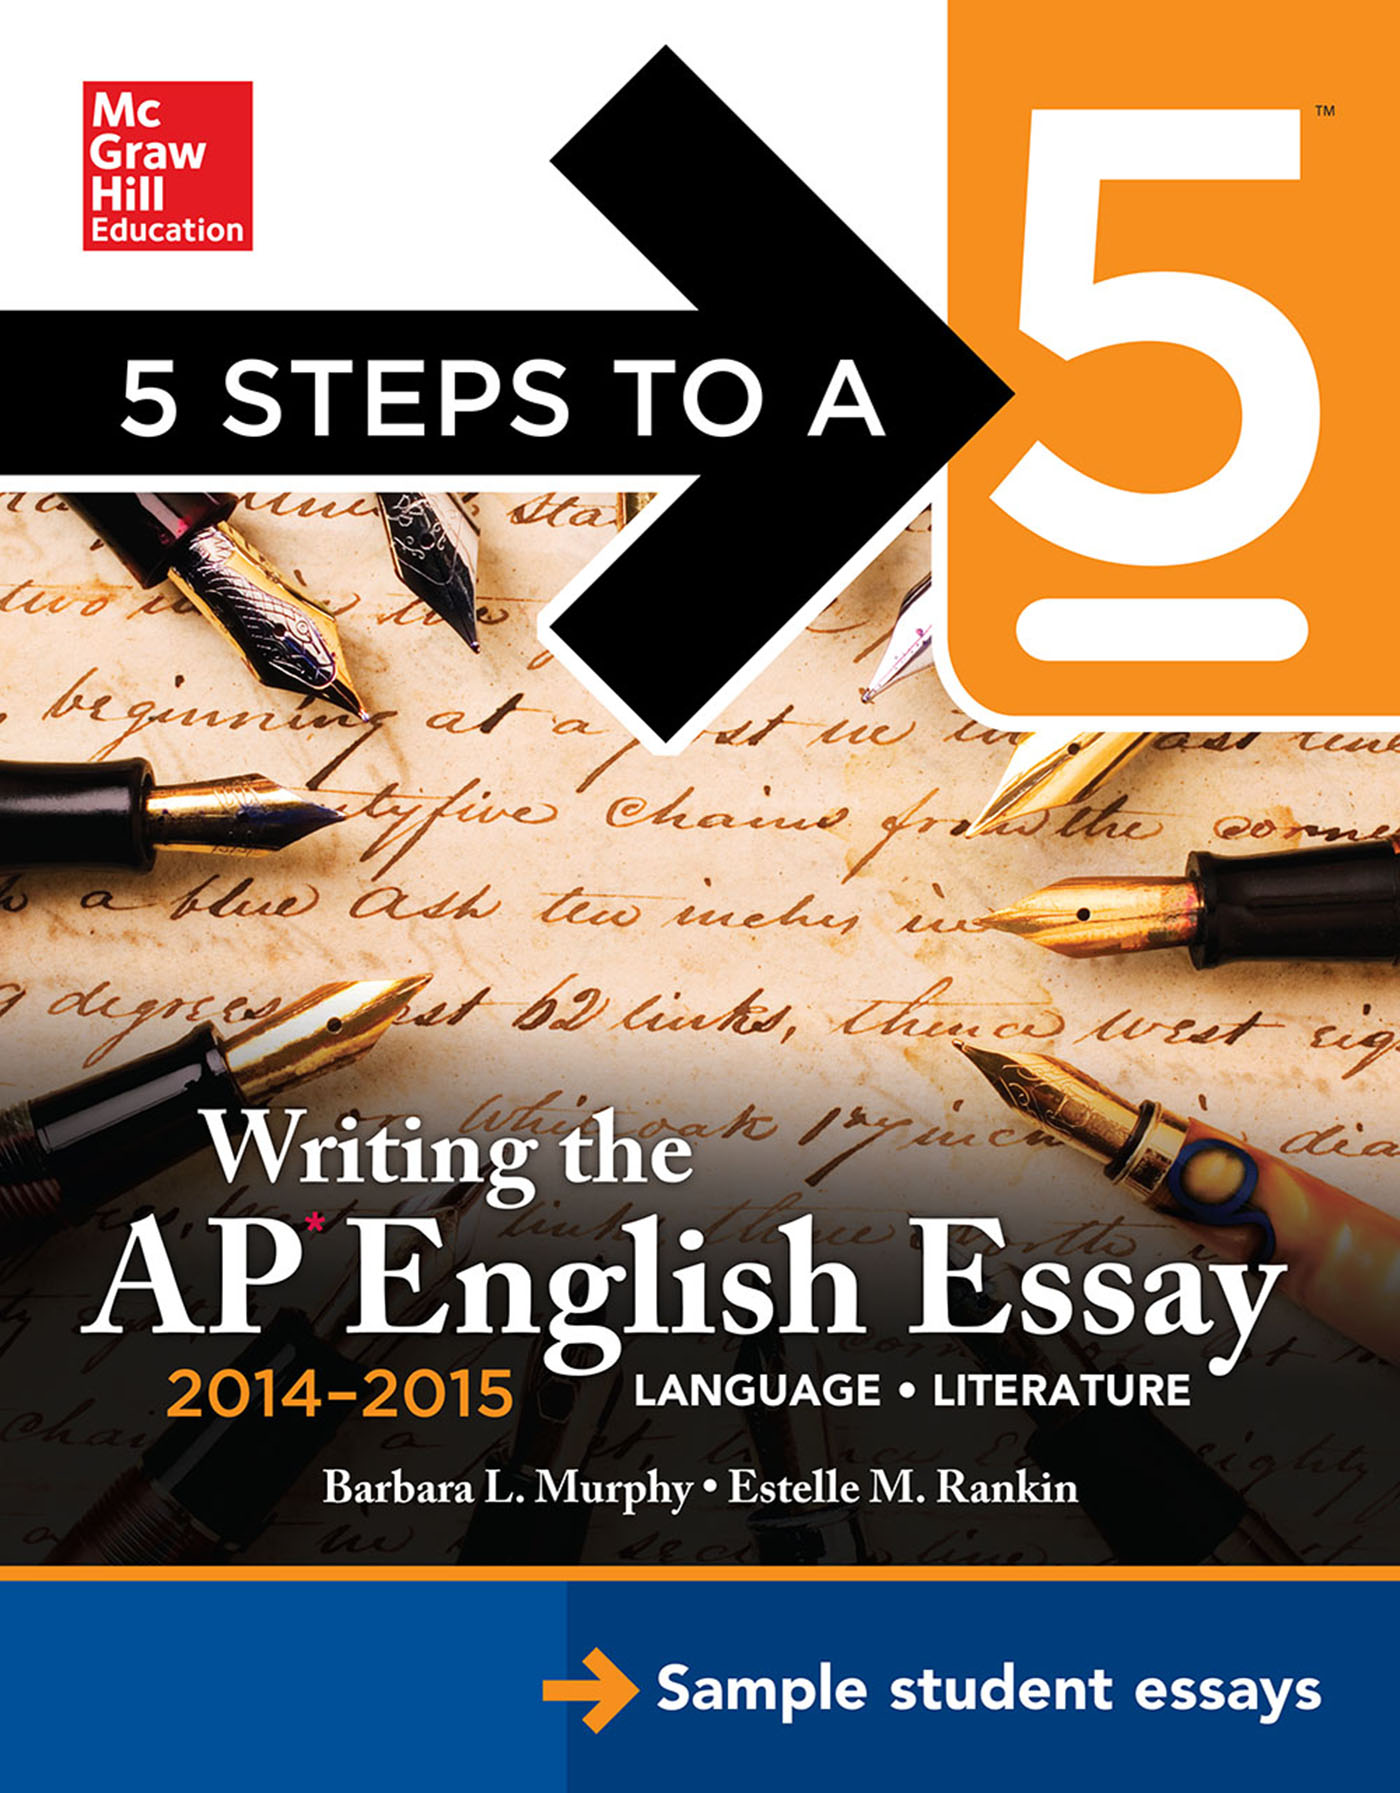 writing an english essay How to write an essay- brief essays and use the principles to expand to longer essays/ even a thesis you might also wish to check the video on interview.